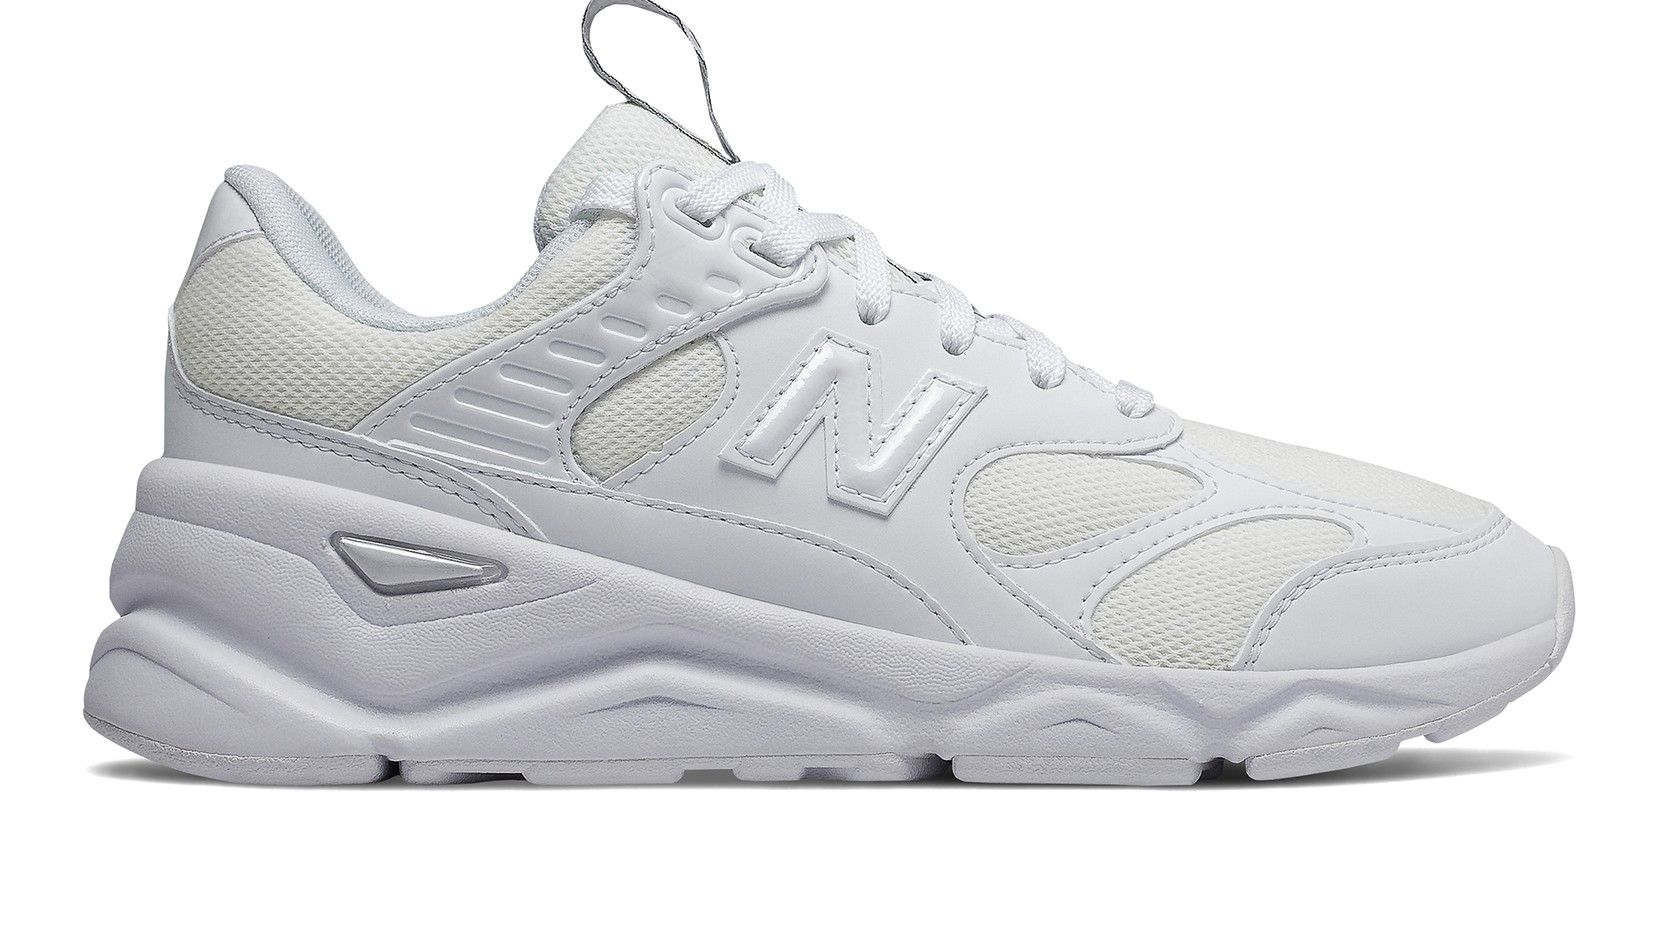 New Balance X90 Re-constructed